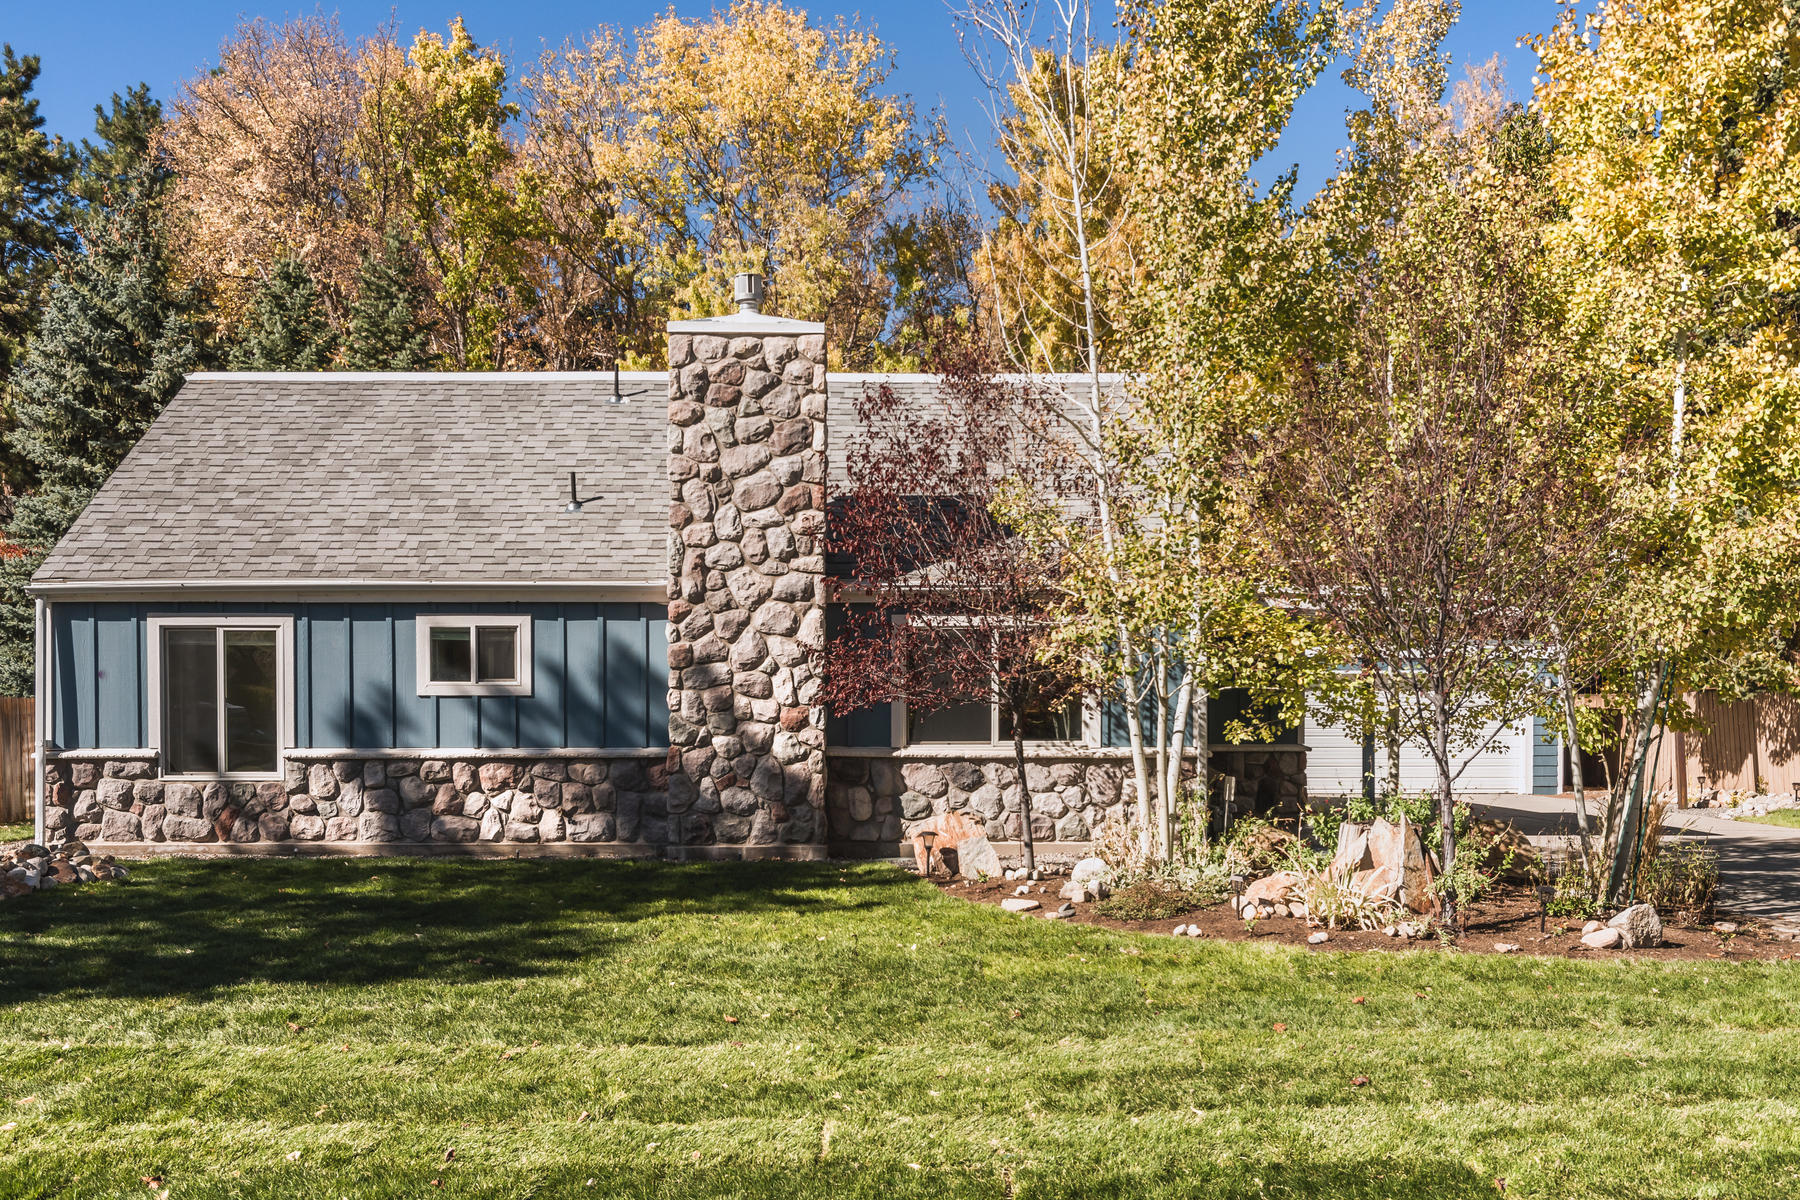 Single Family Homes for Sale at Adventure Starts Here 7692 S Avondale Drive, Cottonwood Heights, Utah 84121 United States